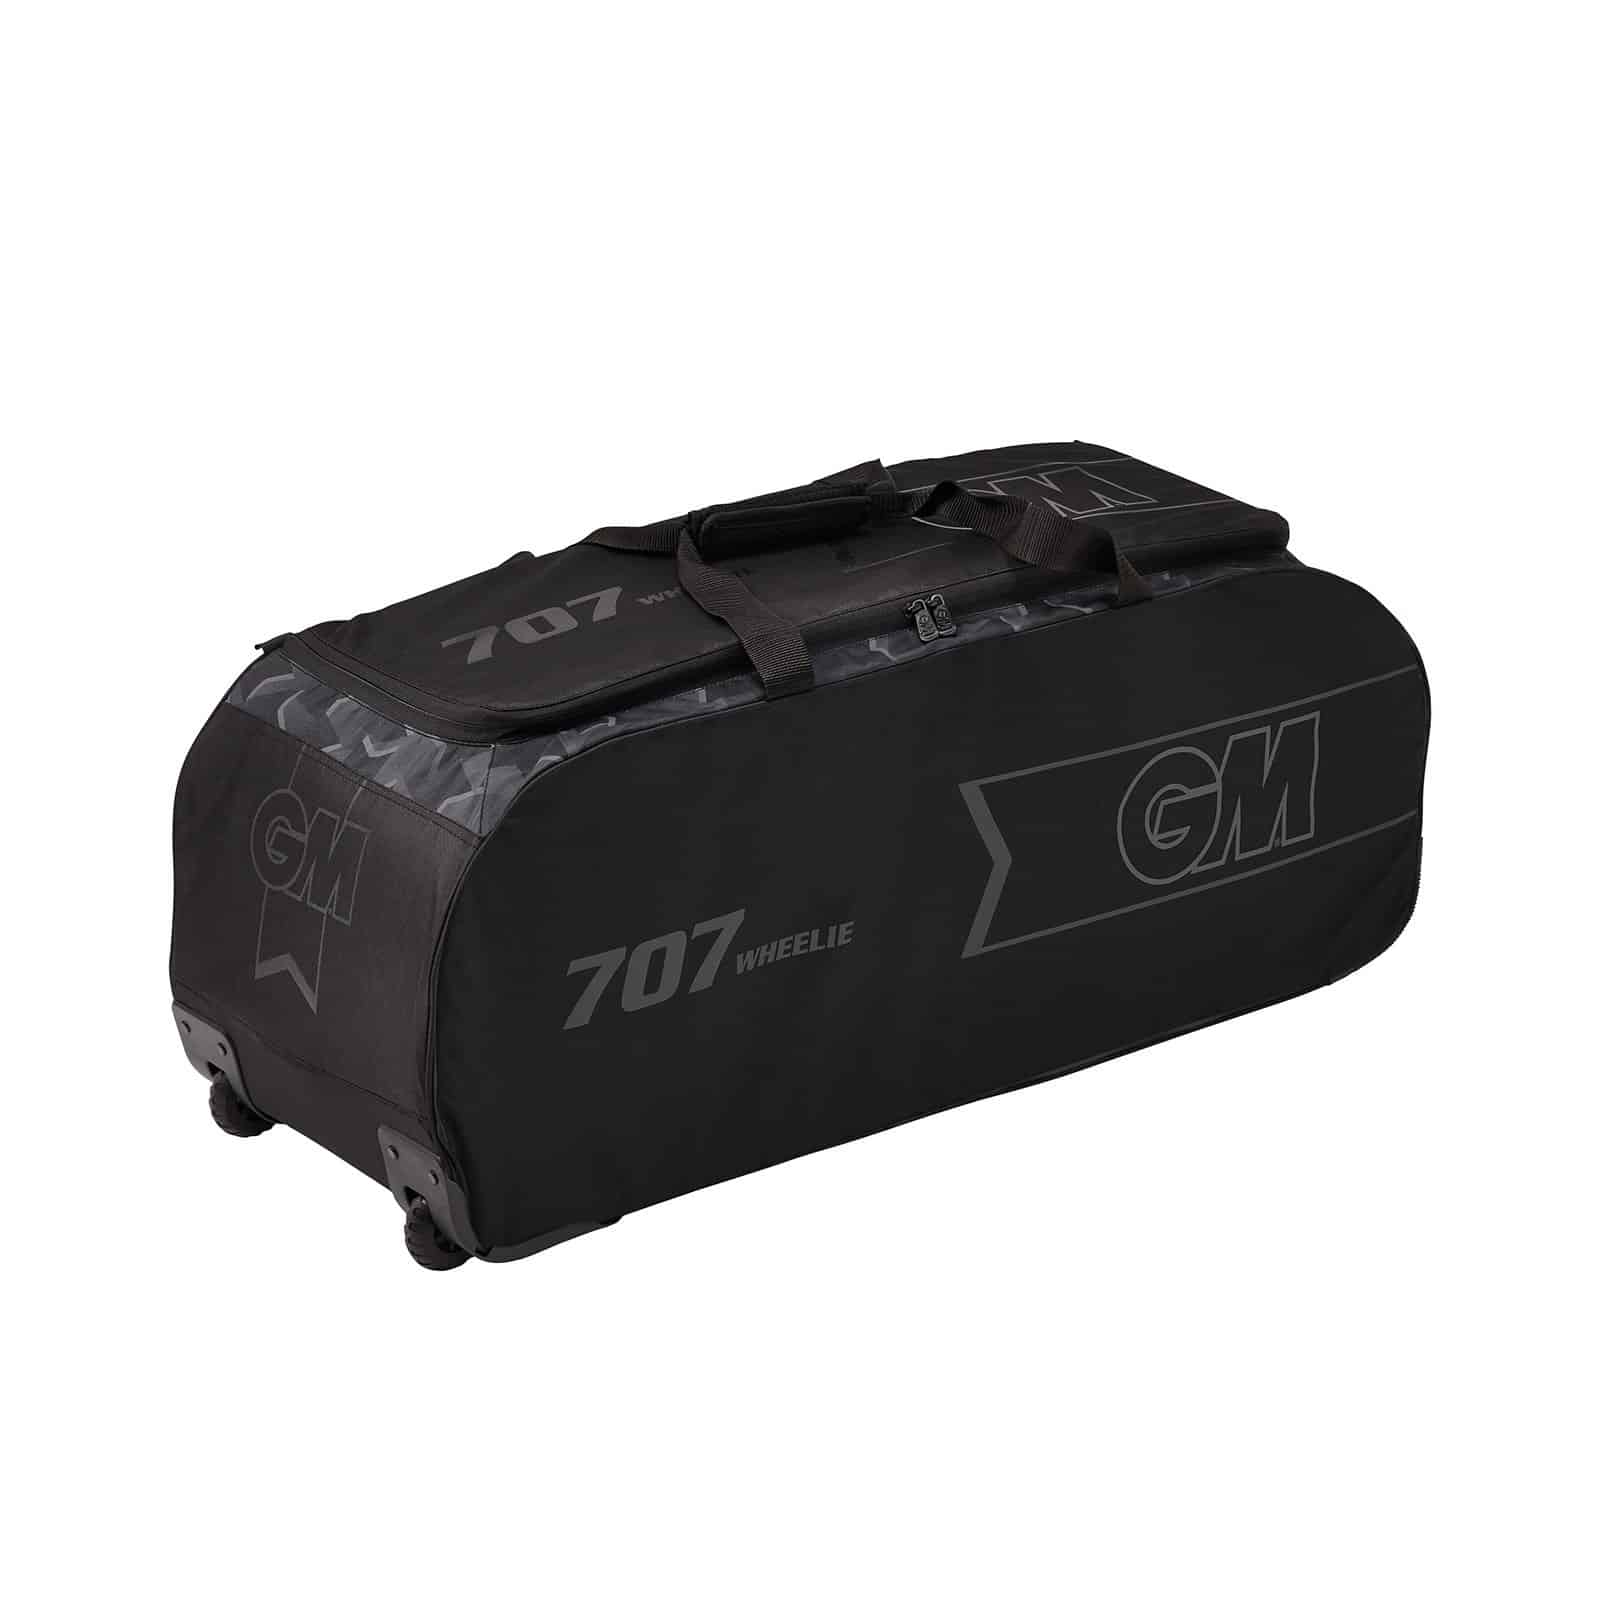 GM 707 Wheel Bag